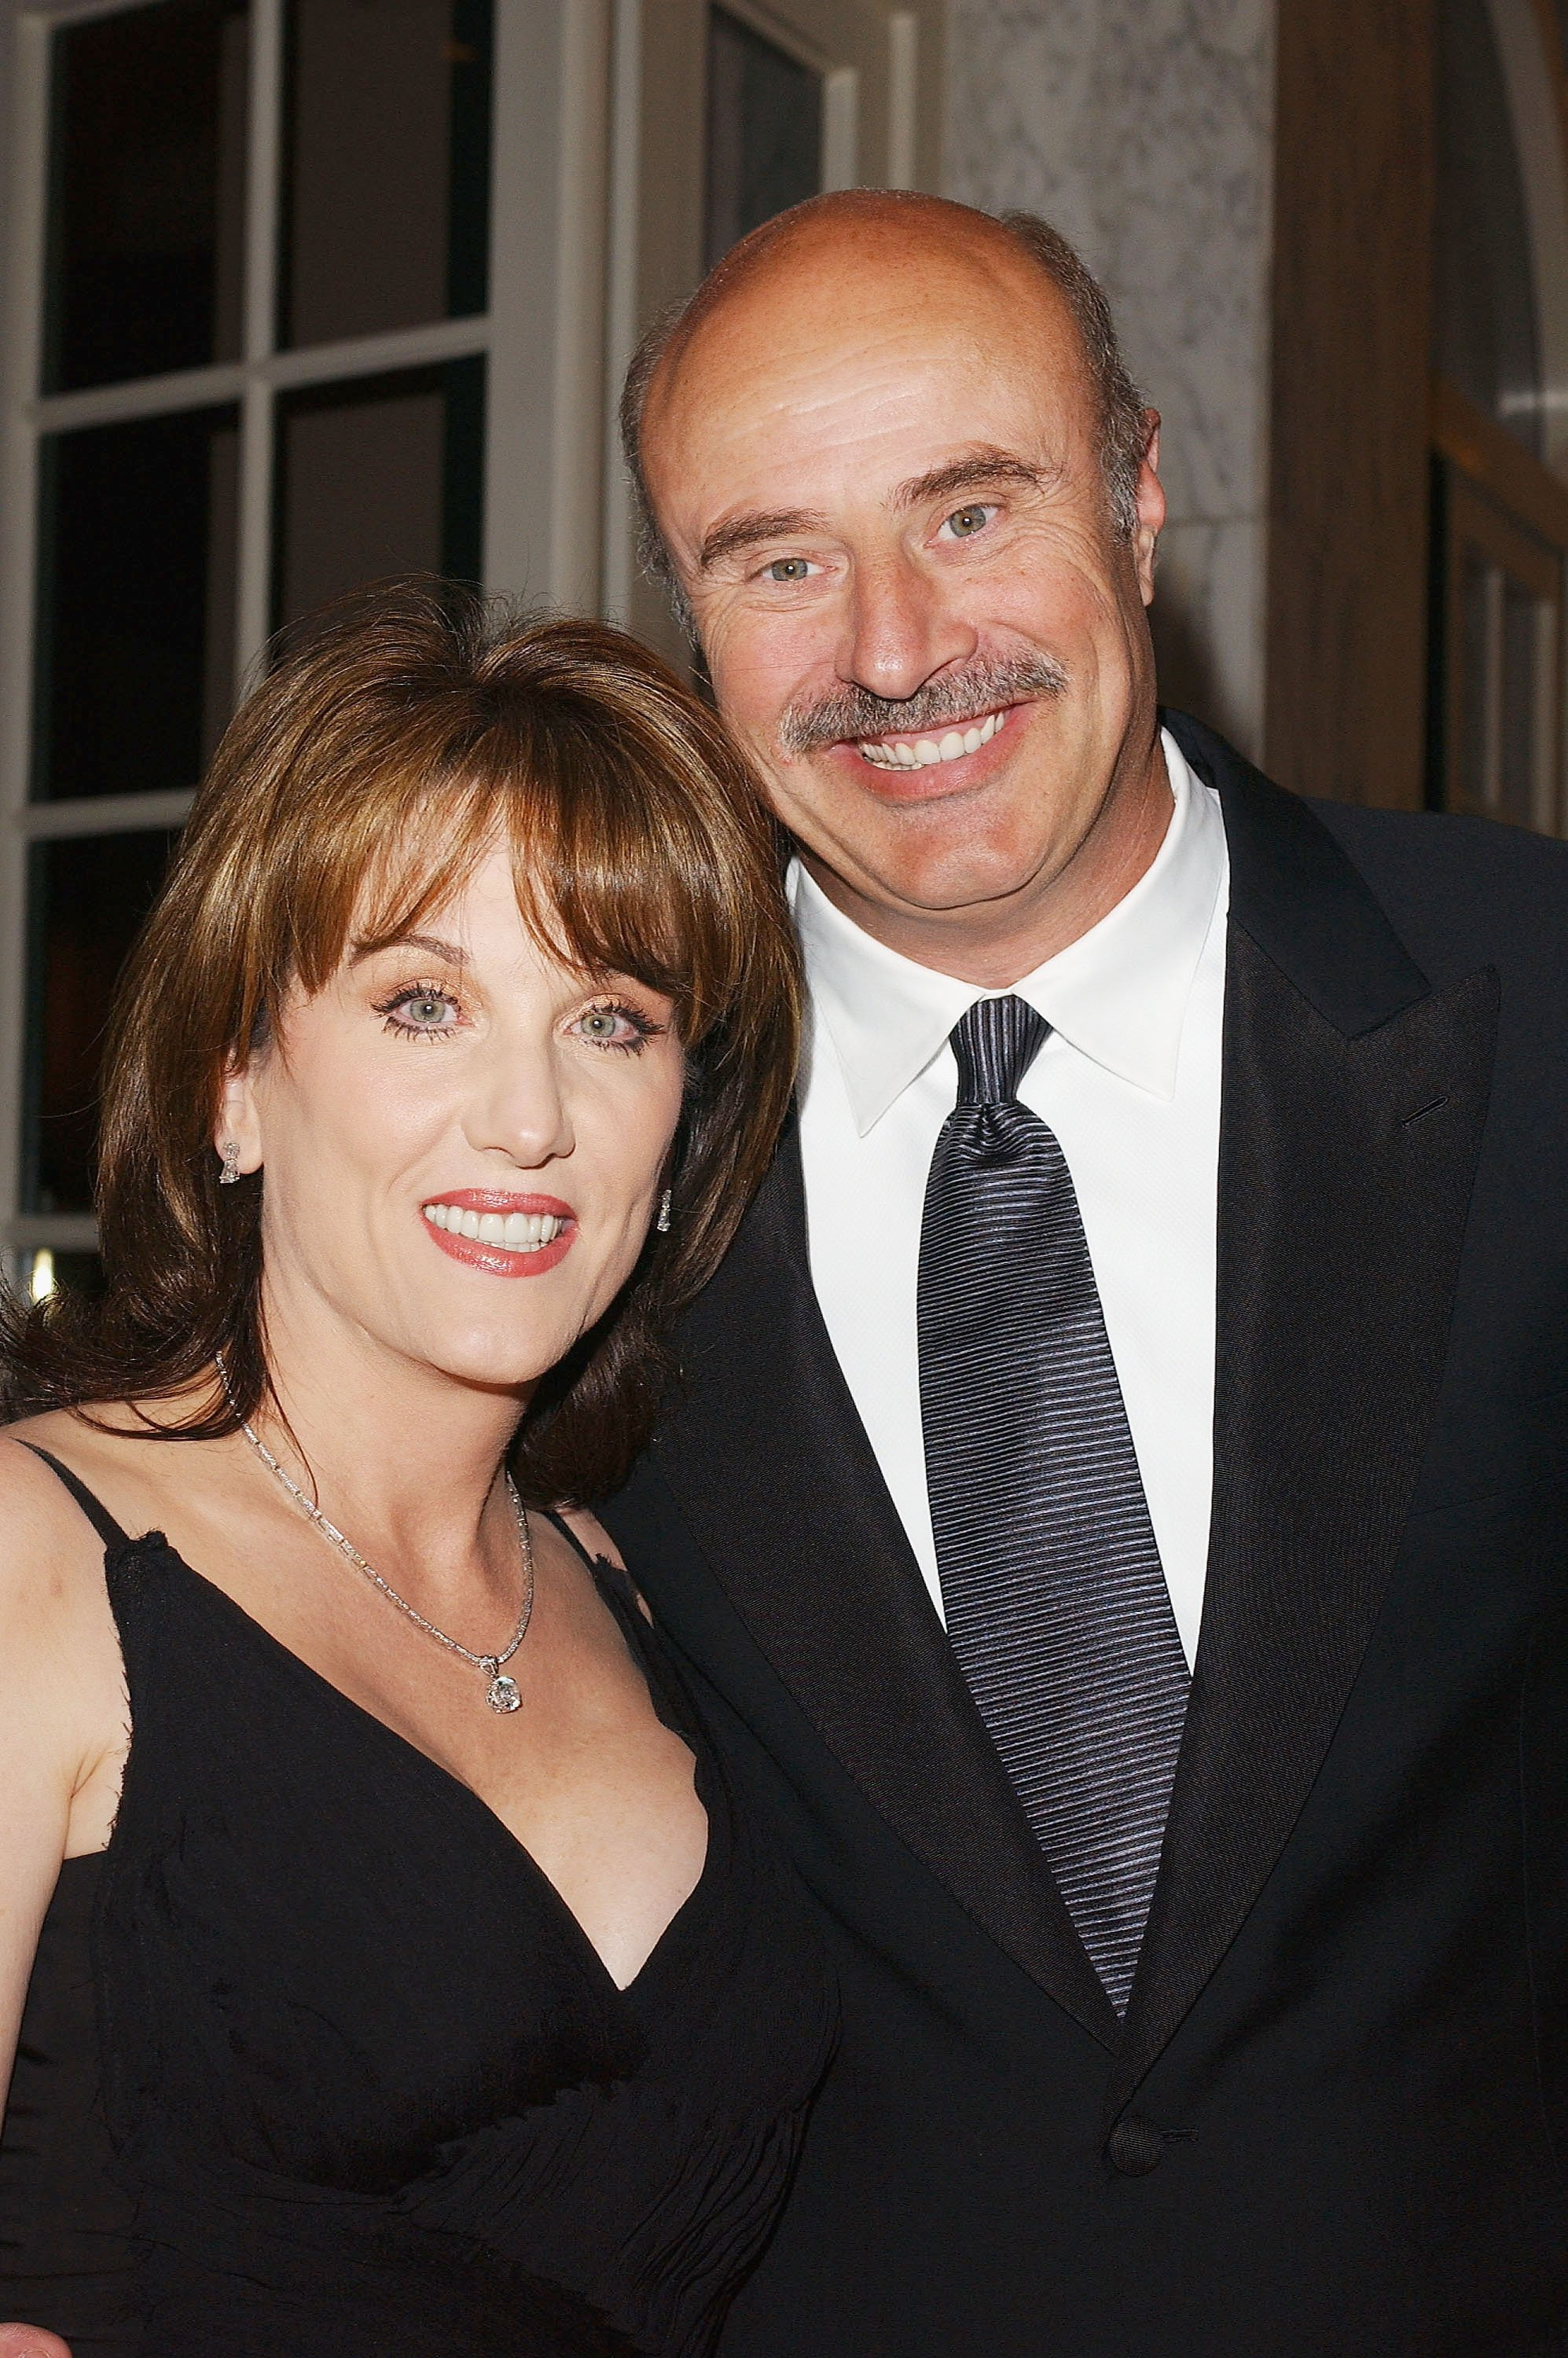 Dr. Phil McGraw and his wife Robin on March 12, 2004, in Beverly Hills, California. | Source: Getty Images